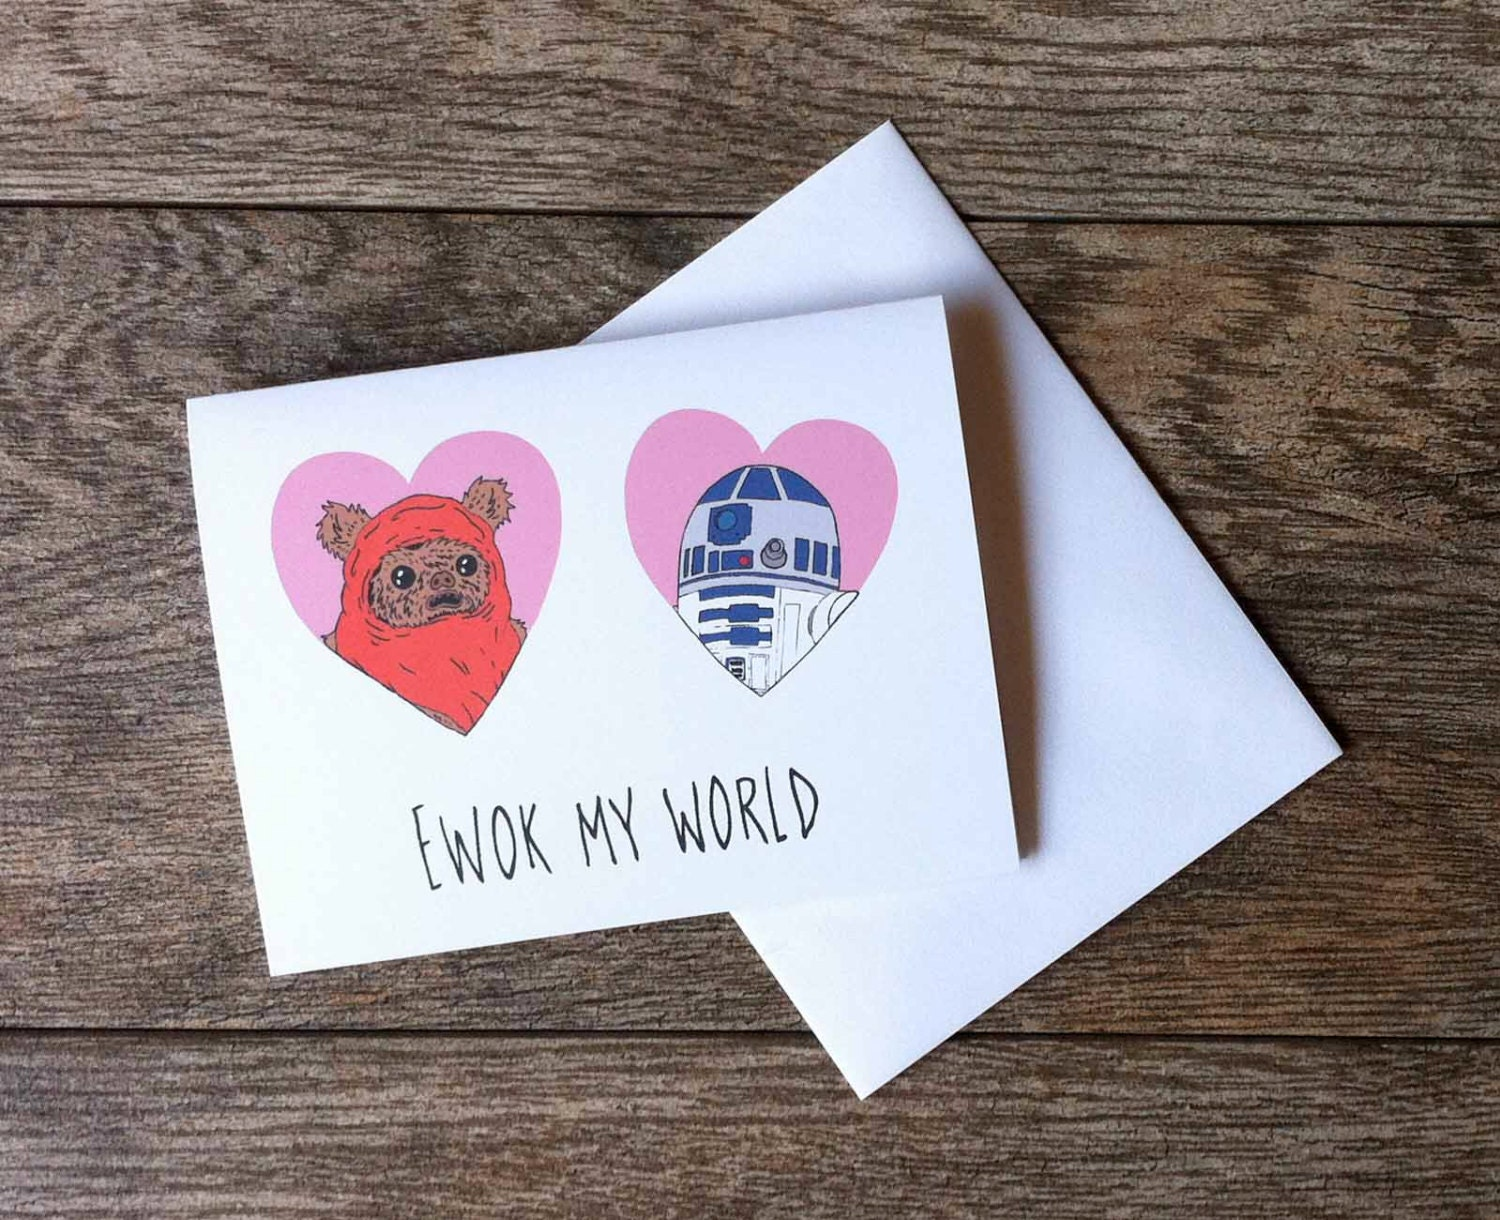 Ewok And R2 D2 Star Wars Greeting Card